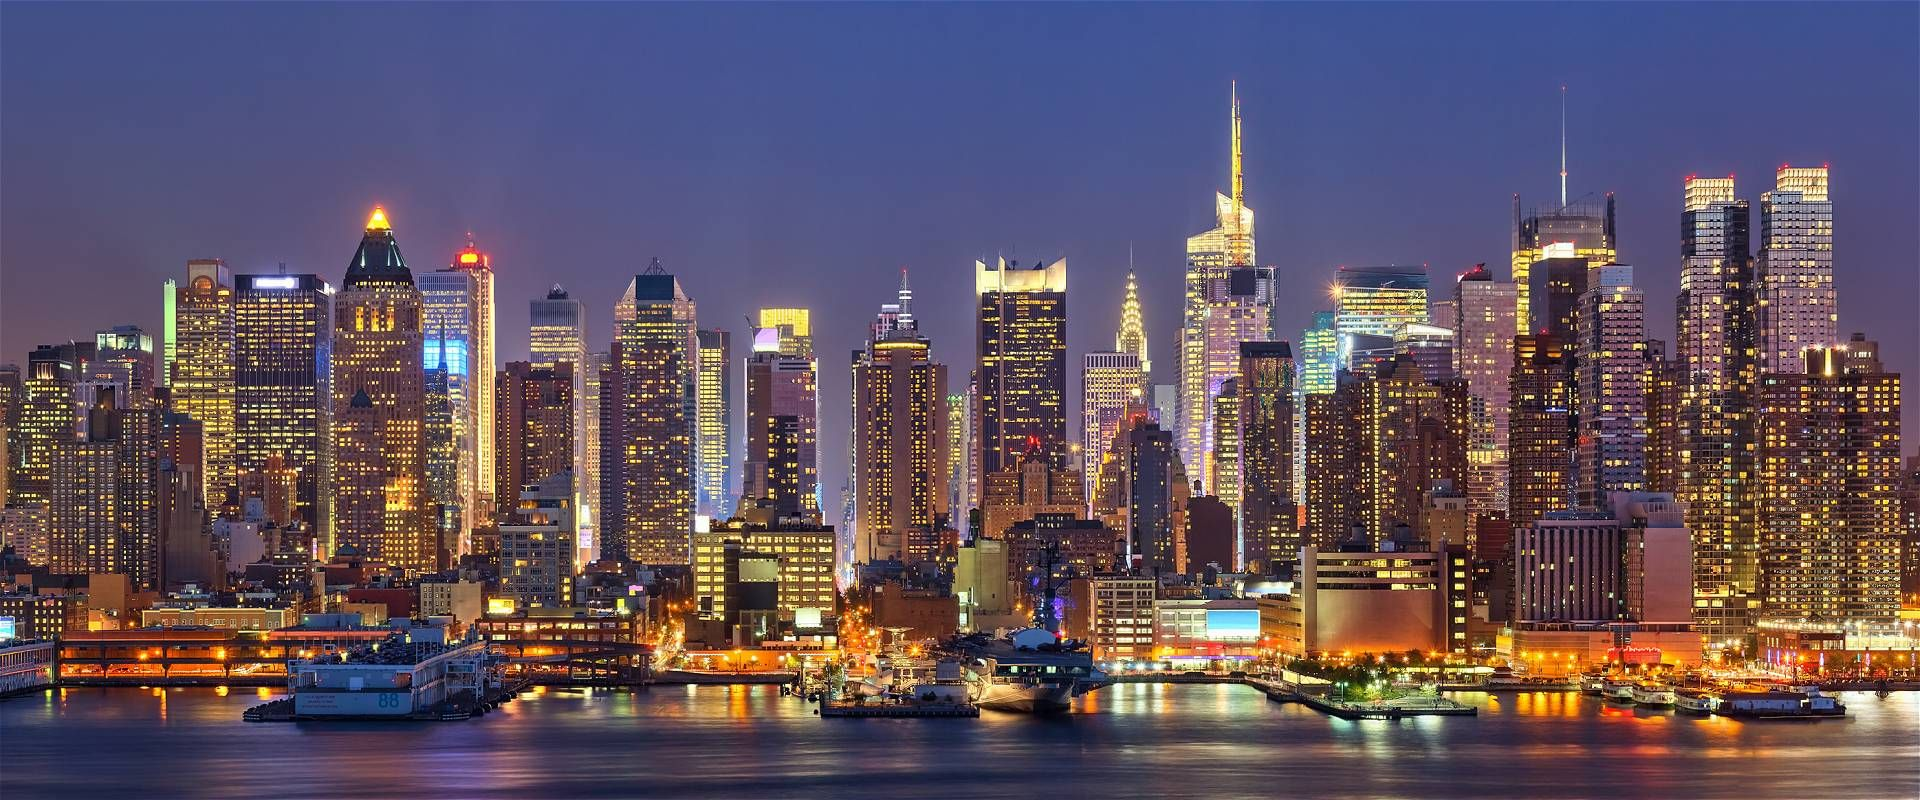 new_york_at_night.jpg (1920×800)